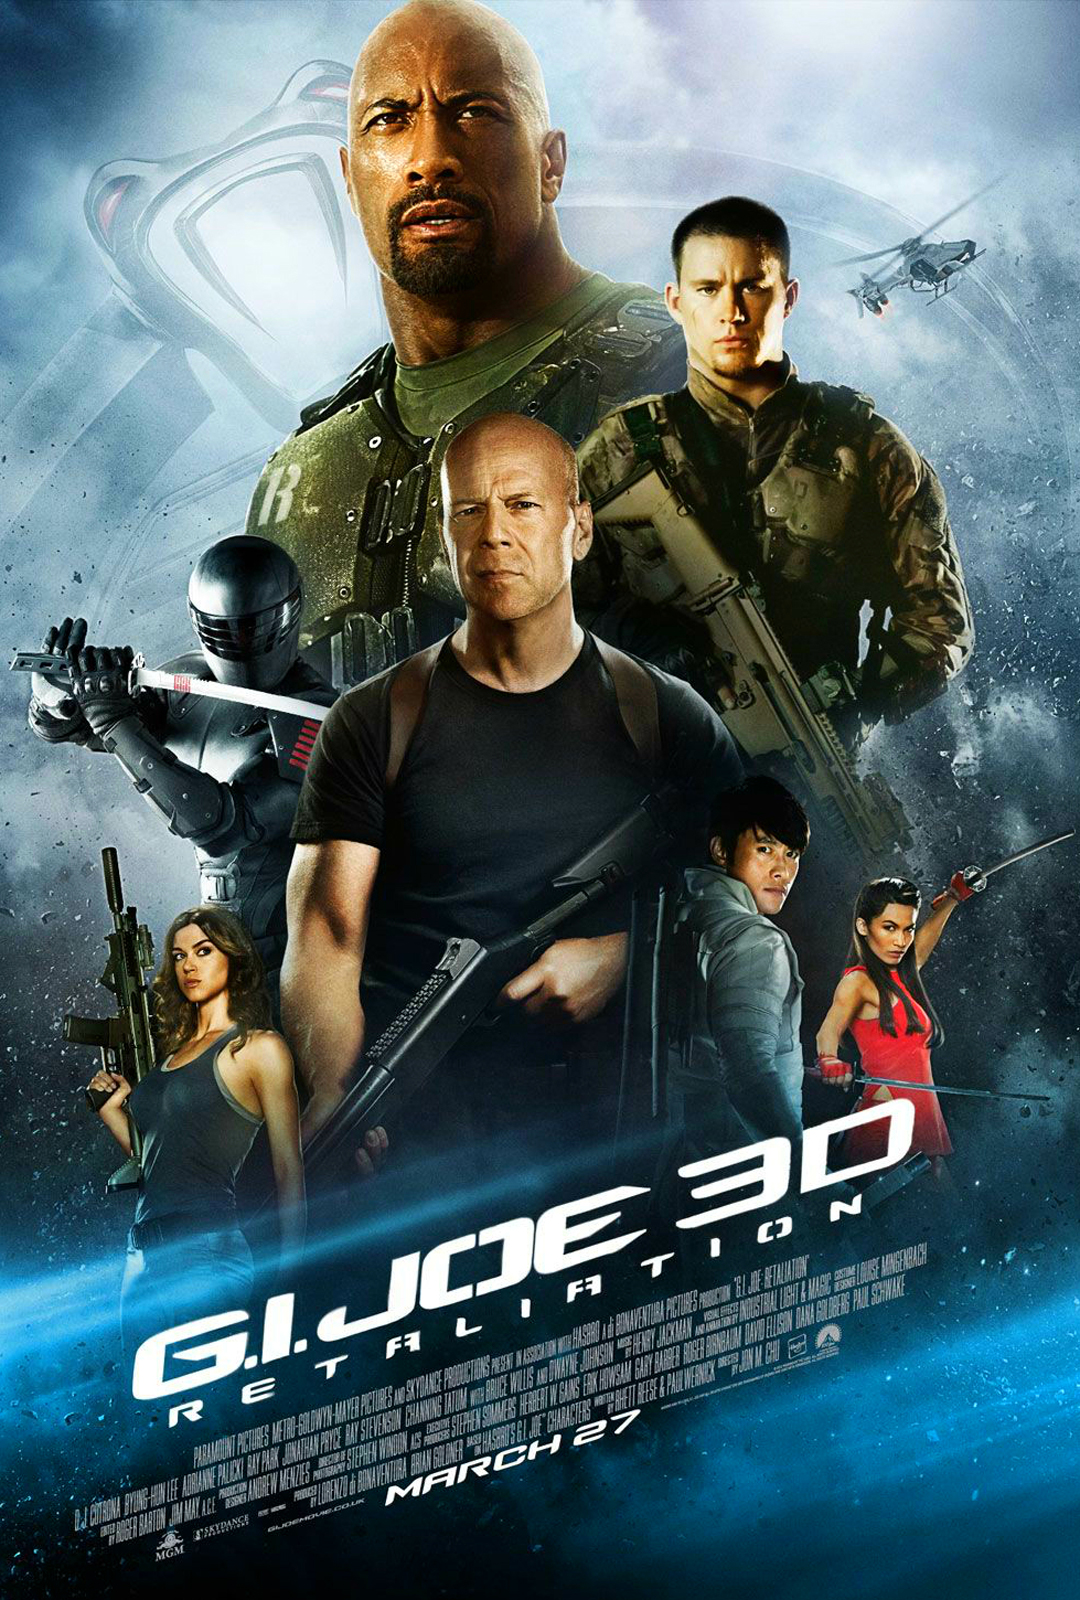 Title: G.I. Joe: Retaliation Director: Jon M. Chu Writers: Rhett Reese and Paul Wernick Distributed By: Paramount Pictures and Metro-Goldwyn-Meyer...